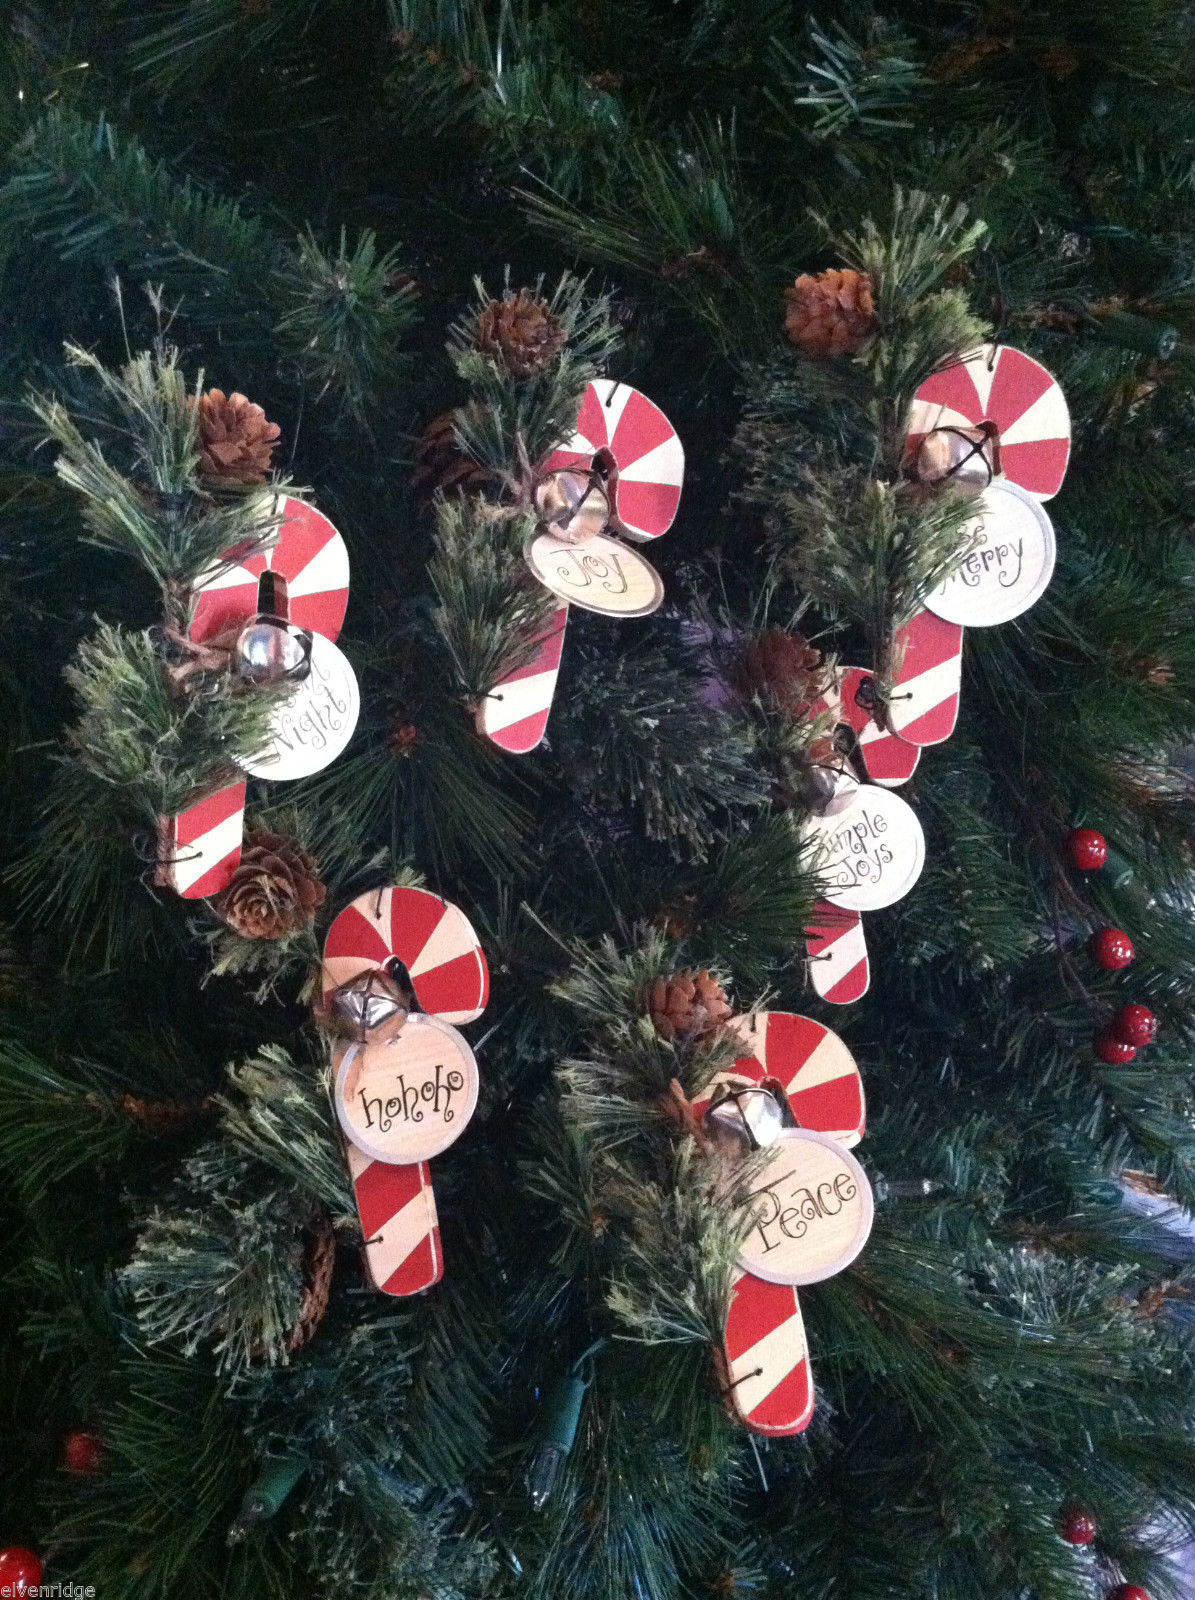 Set of 6 Wooden Candy Cane Tree Ornaments with Pine and Bell Decoration